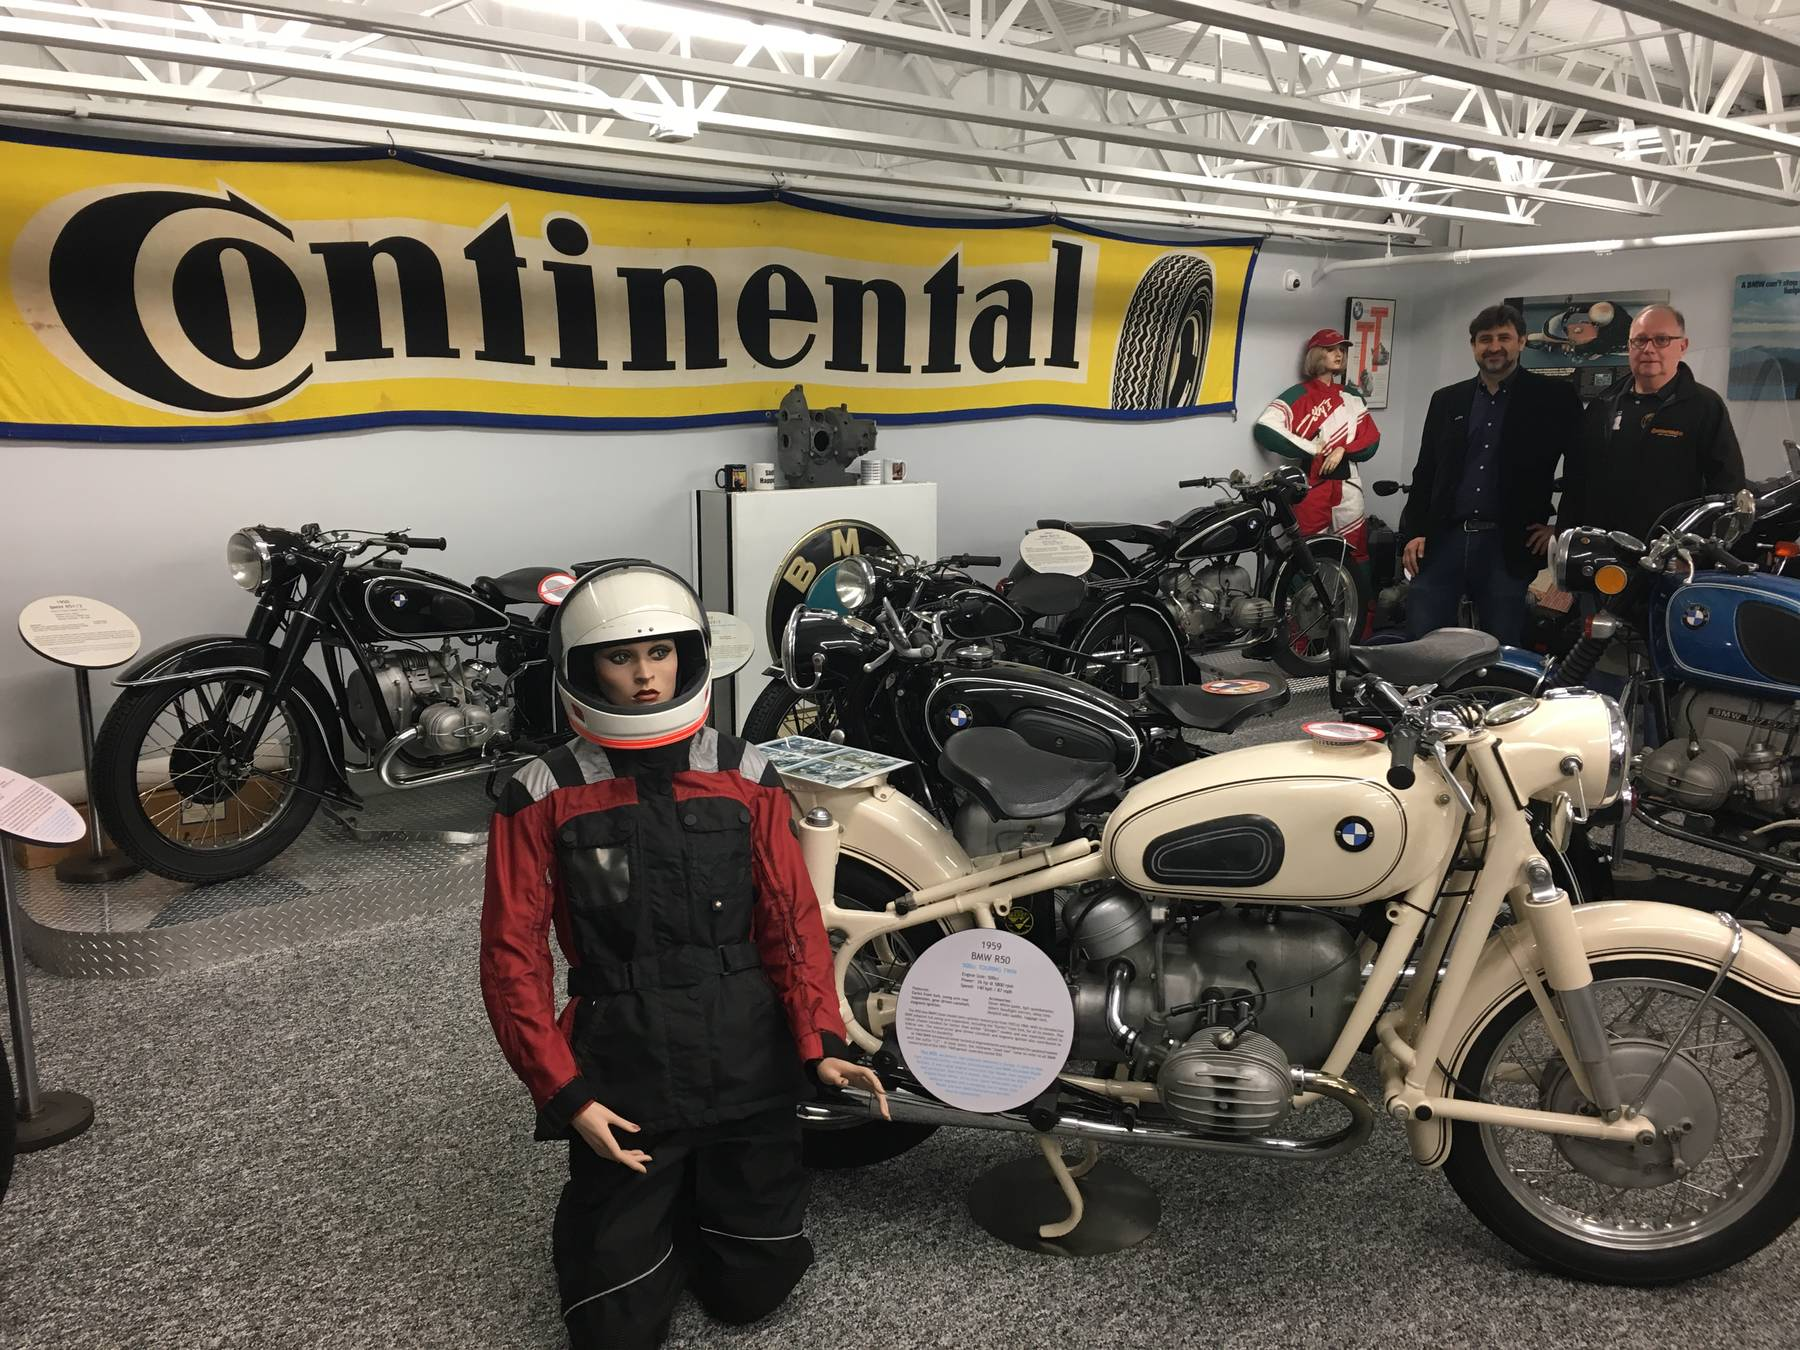 Bob S Bmw Museum A Collection Of Motorcycle History In Dc Contimoto Usa Blog